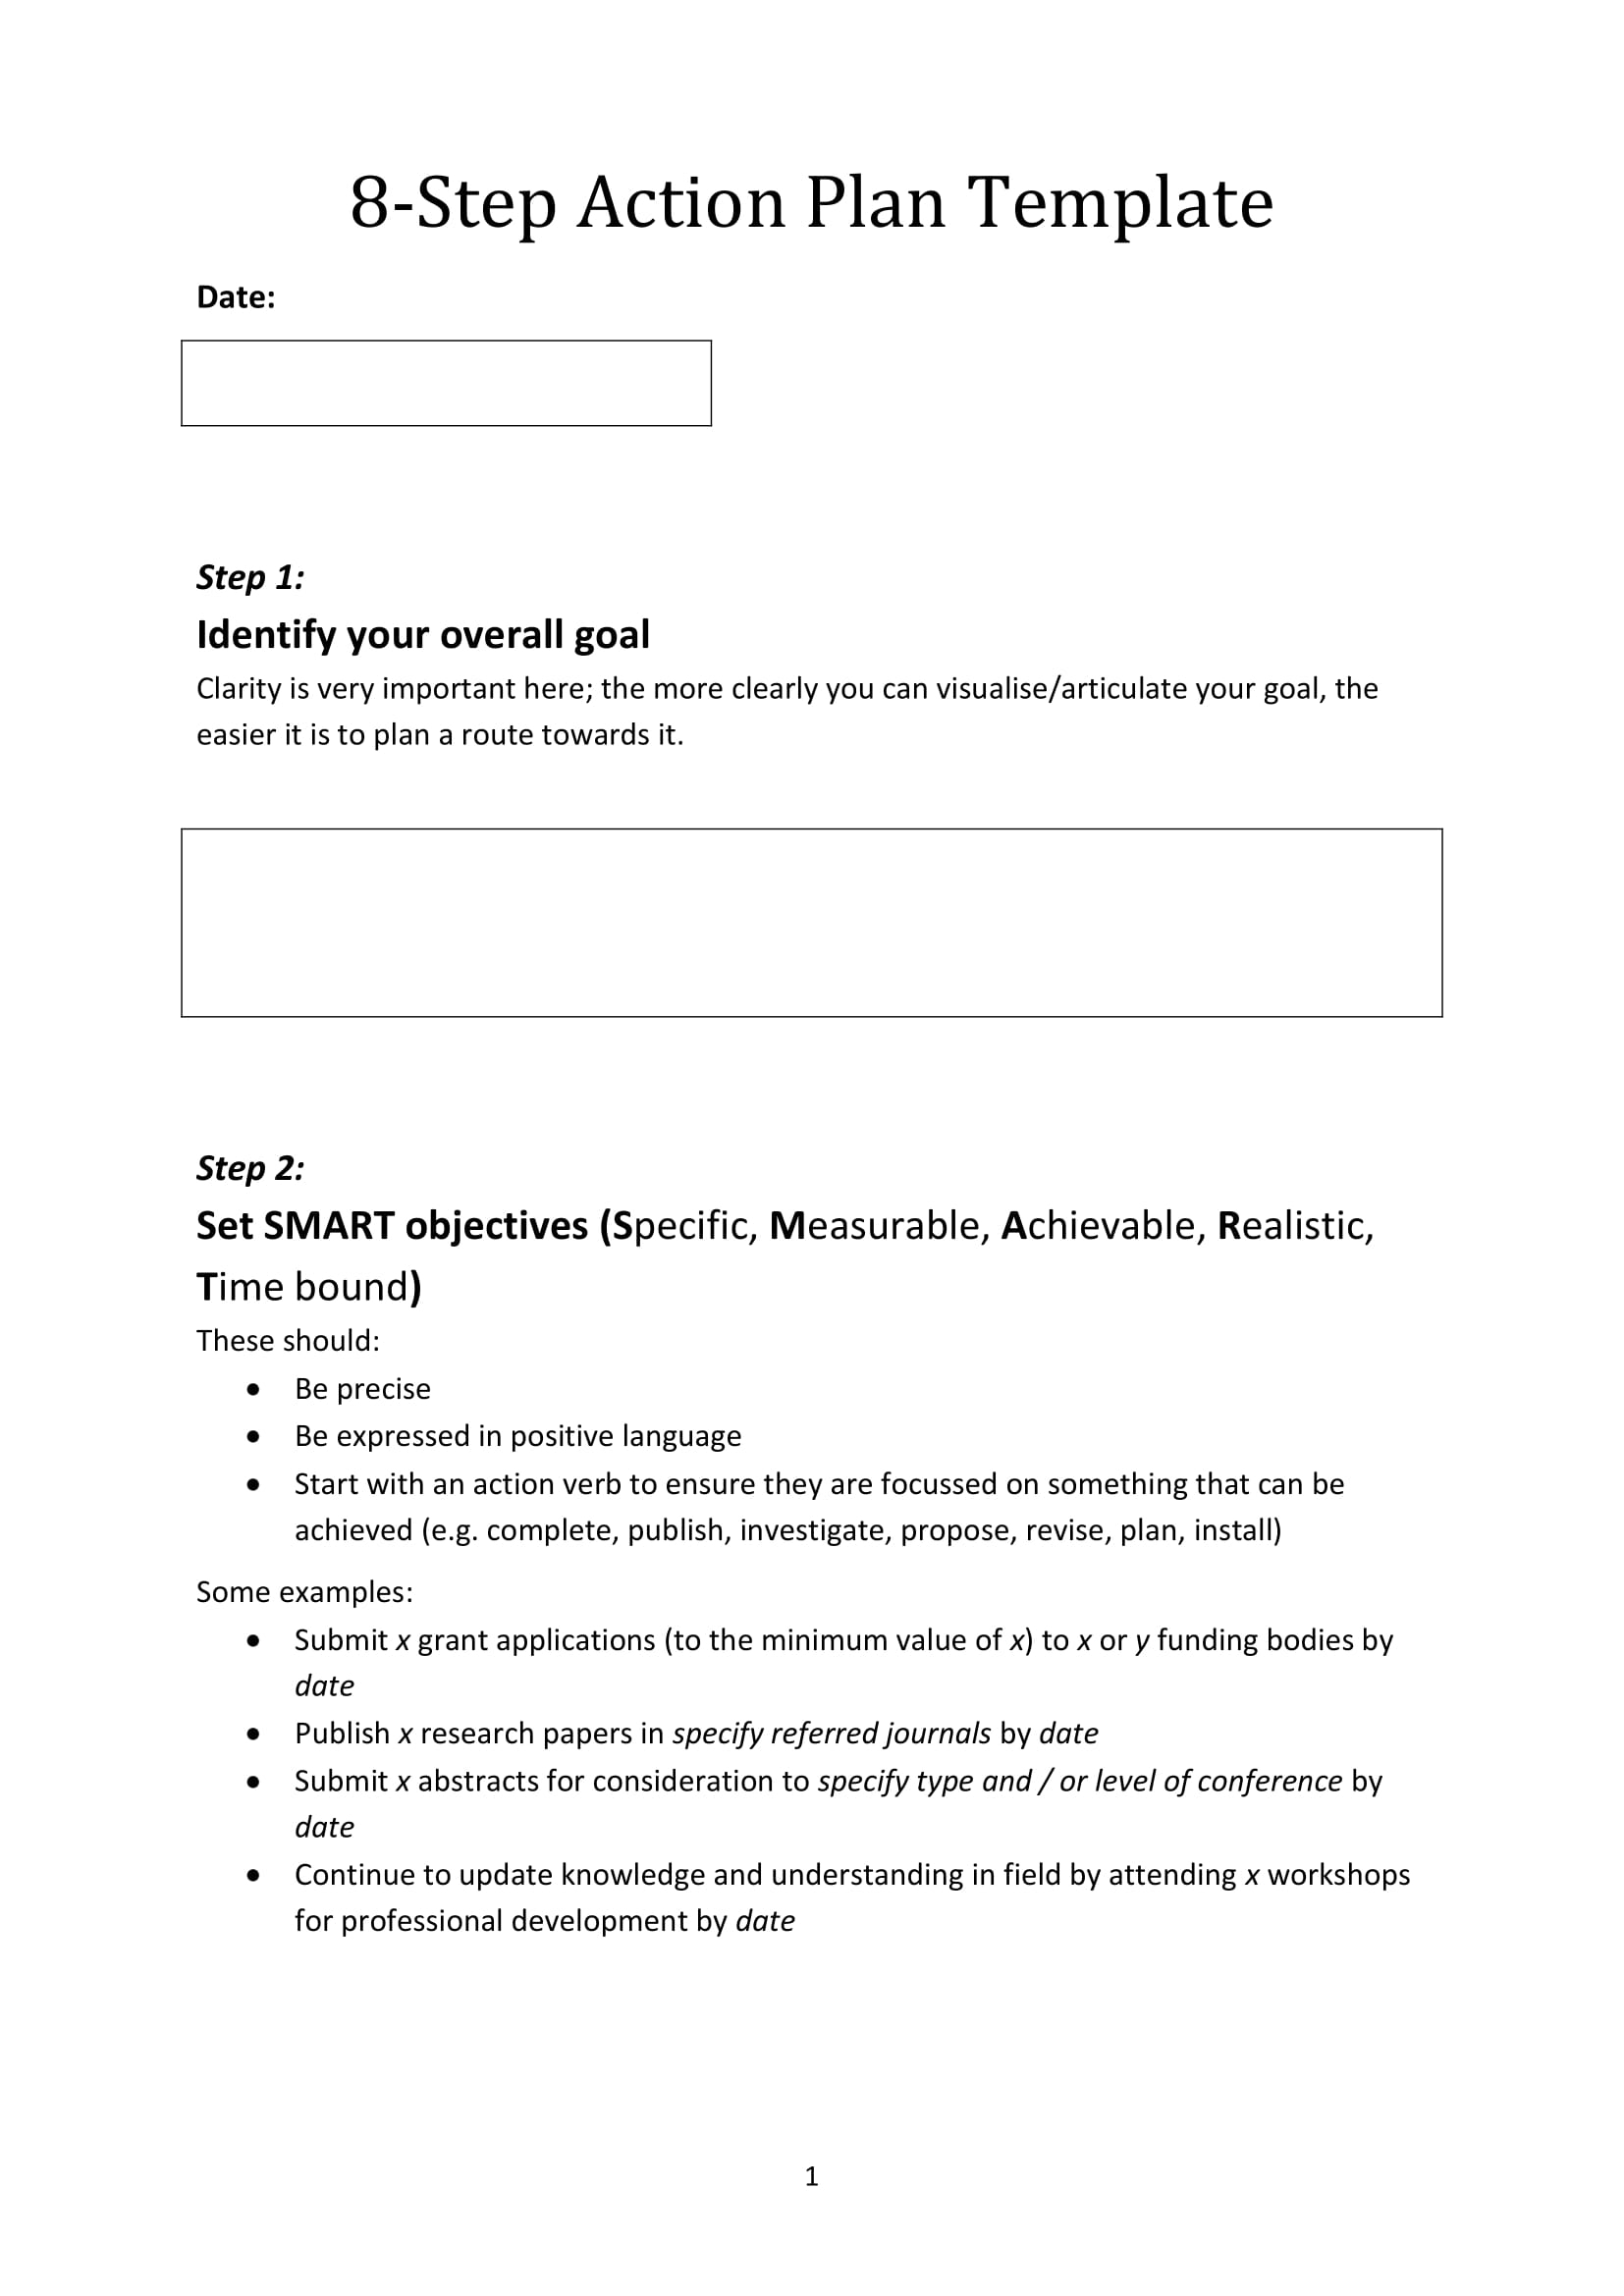 8 step action plan template for business activities example 1